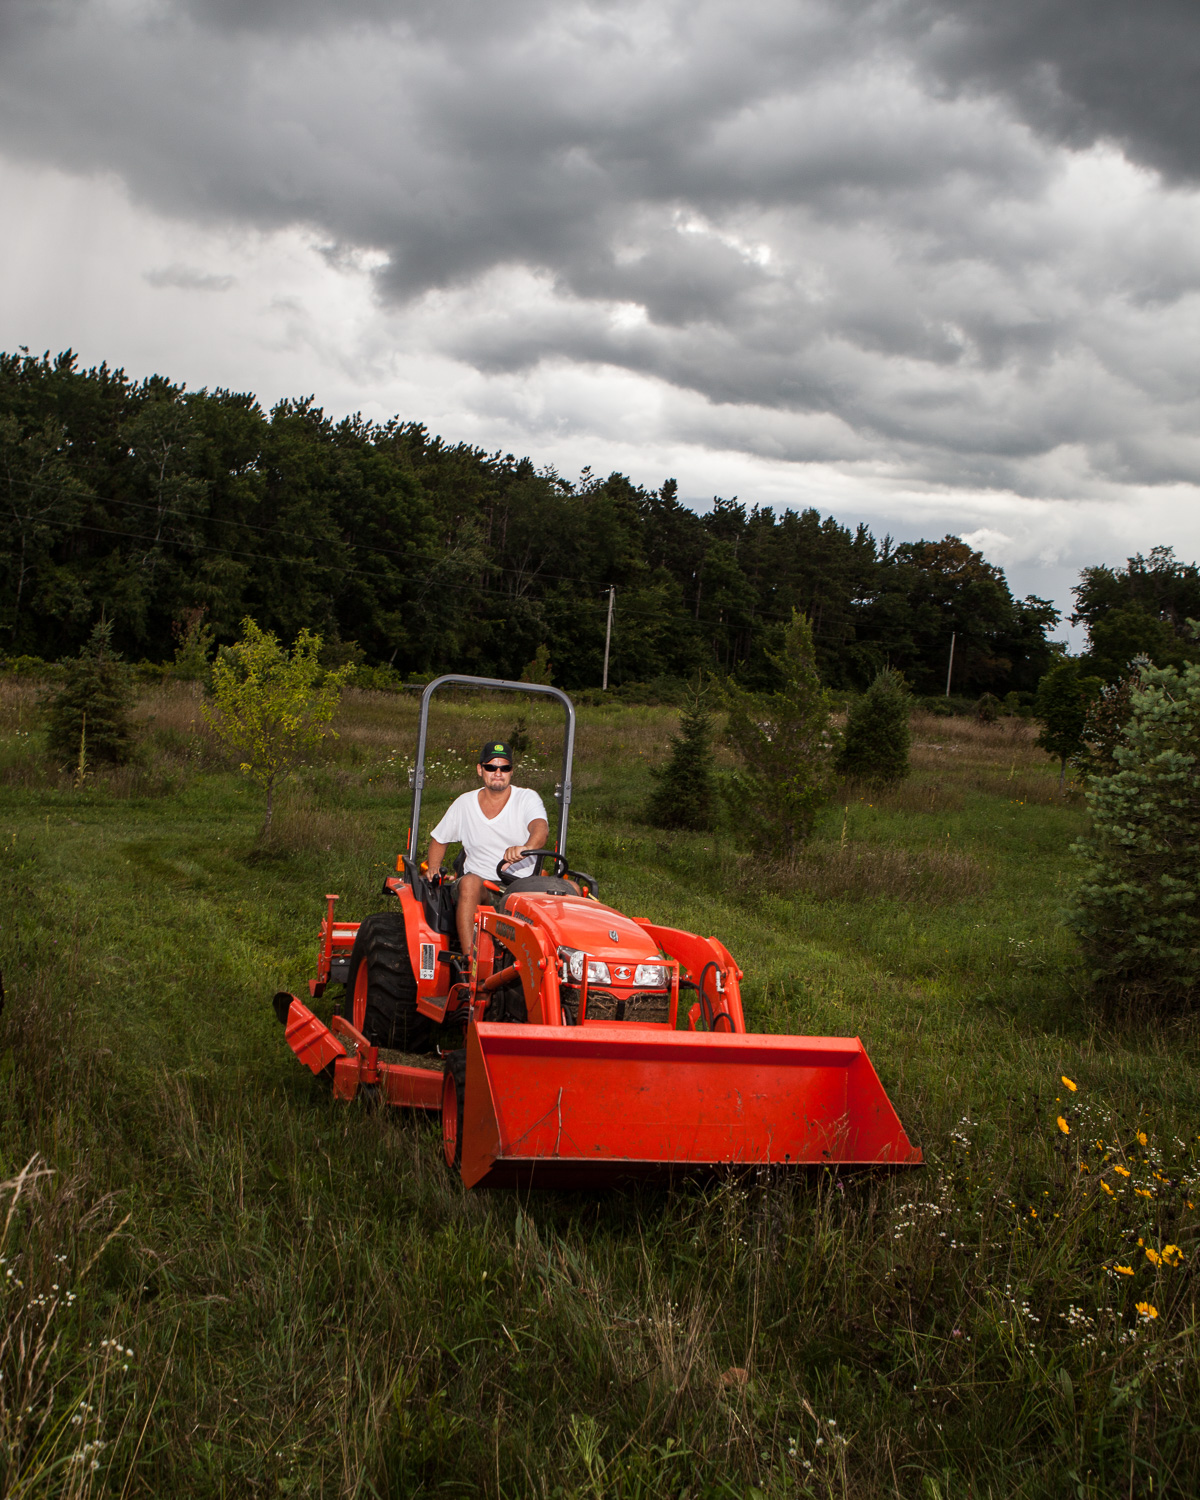 Christian mowing the grass at our farm with the tractor. Christian loves big machines.